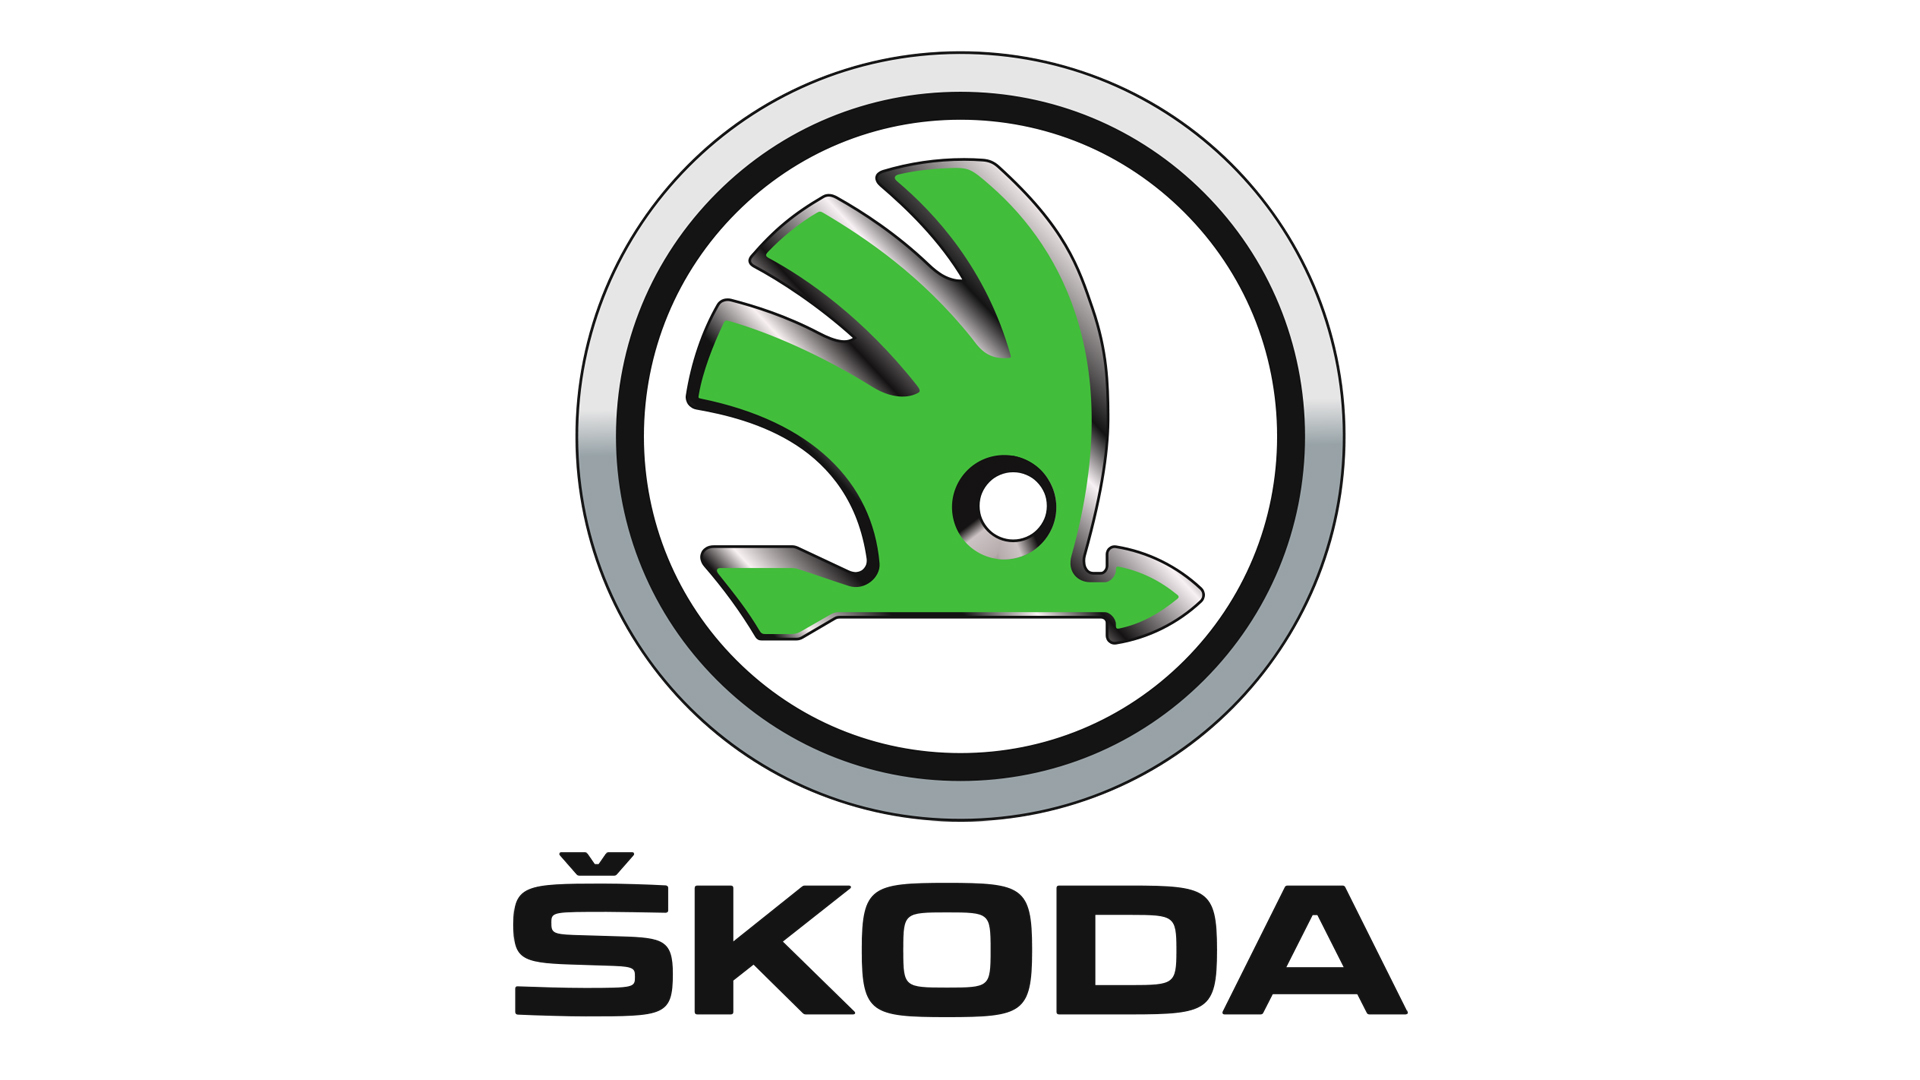 Skoda Logo Meaning And History Latest Models World Cars